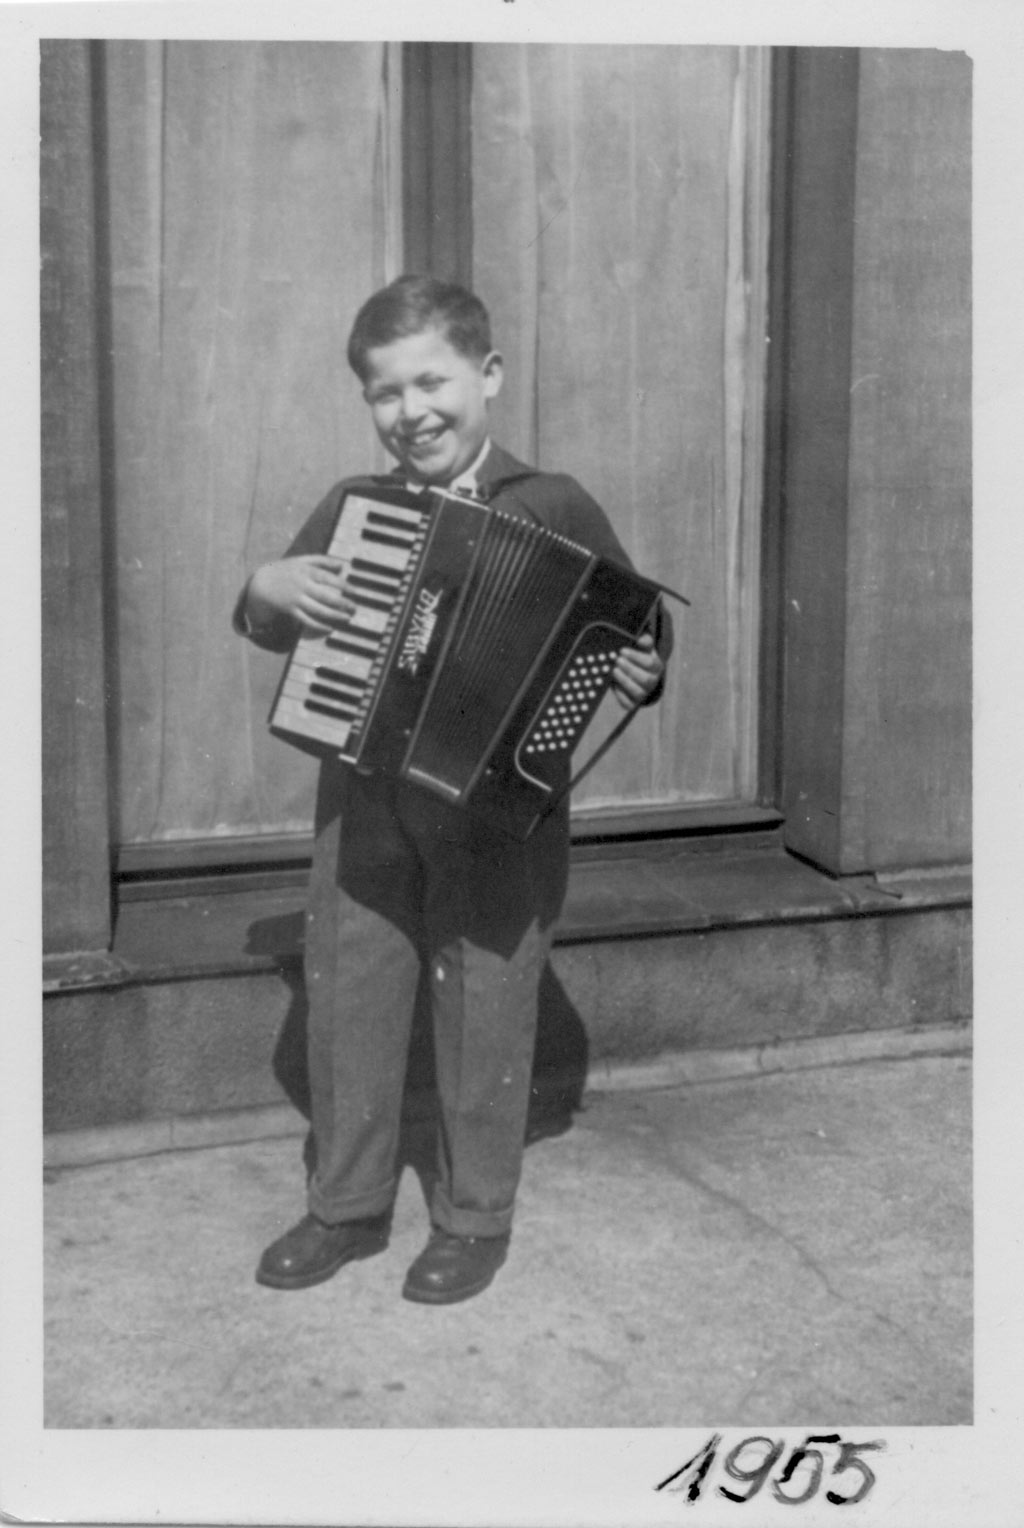 Daniel with his accordion, 1955